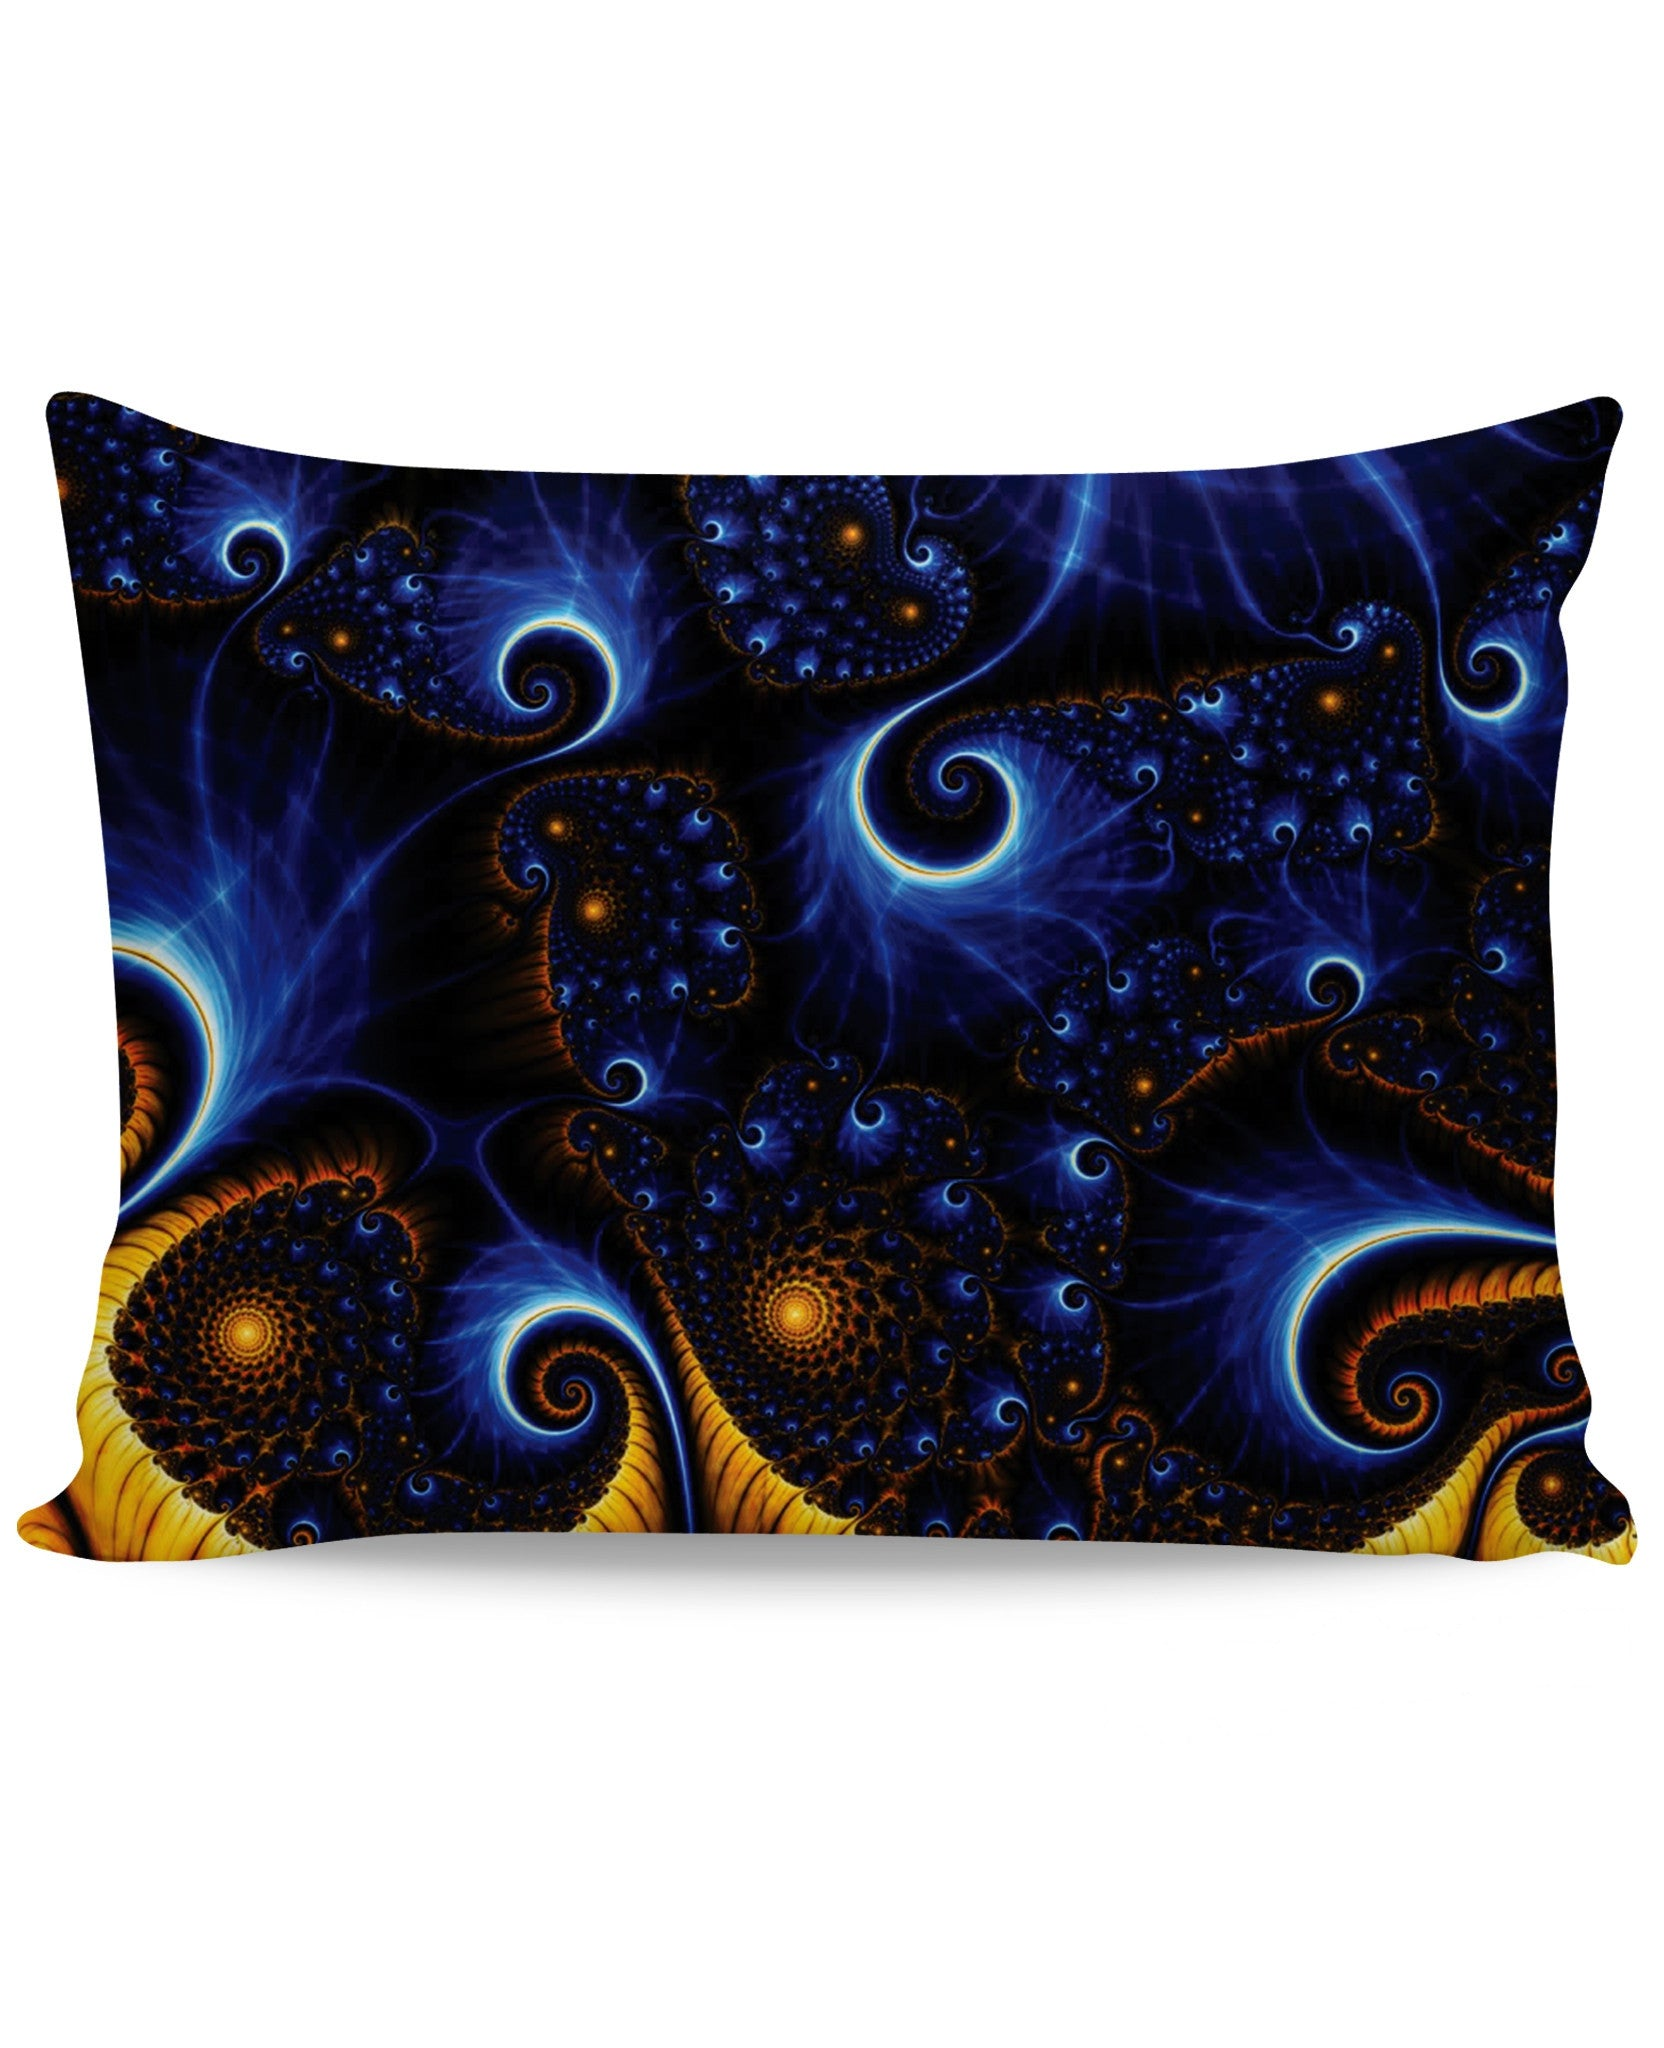 Swirlz Pillow Case